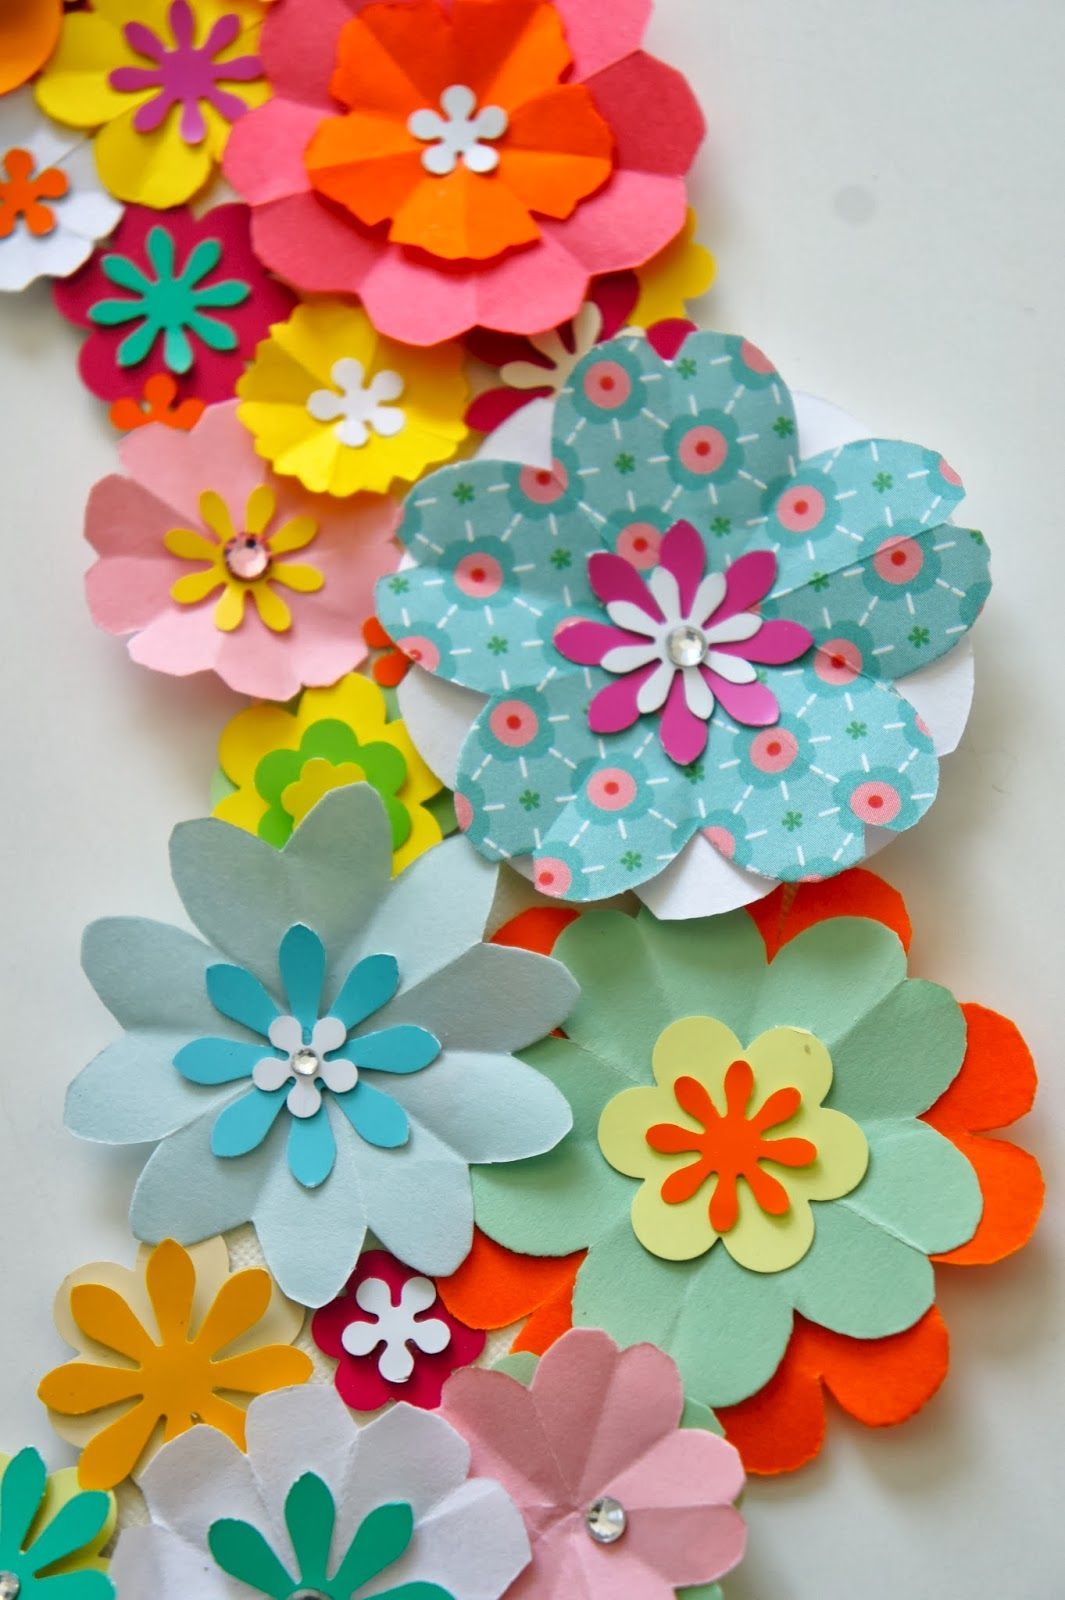 Detail of wreath paper flowers ideasfromtheforest pinterest detail of wreath paper flowers dhlflorist Choice Image